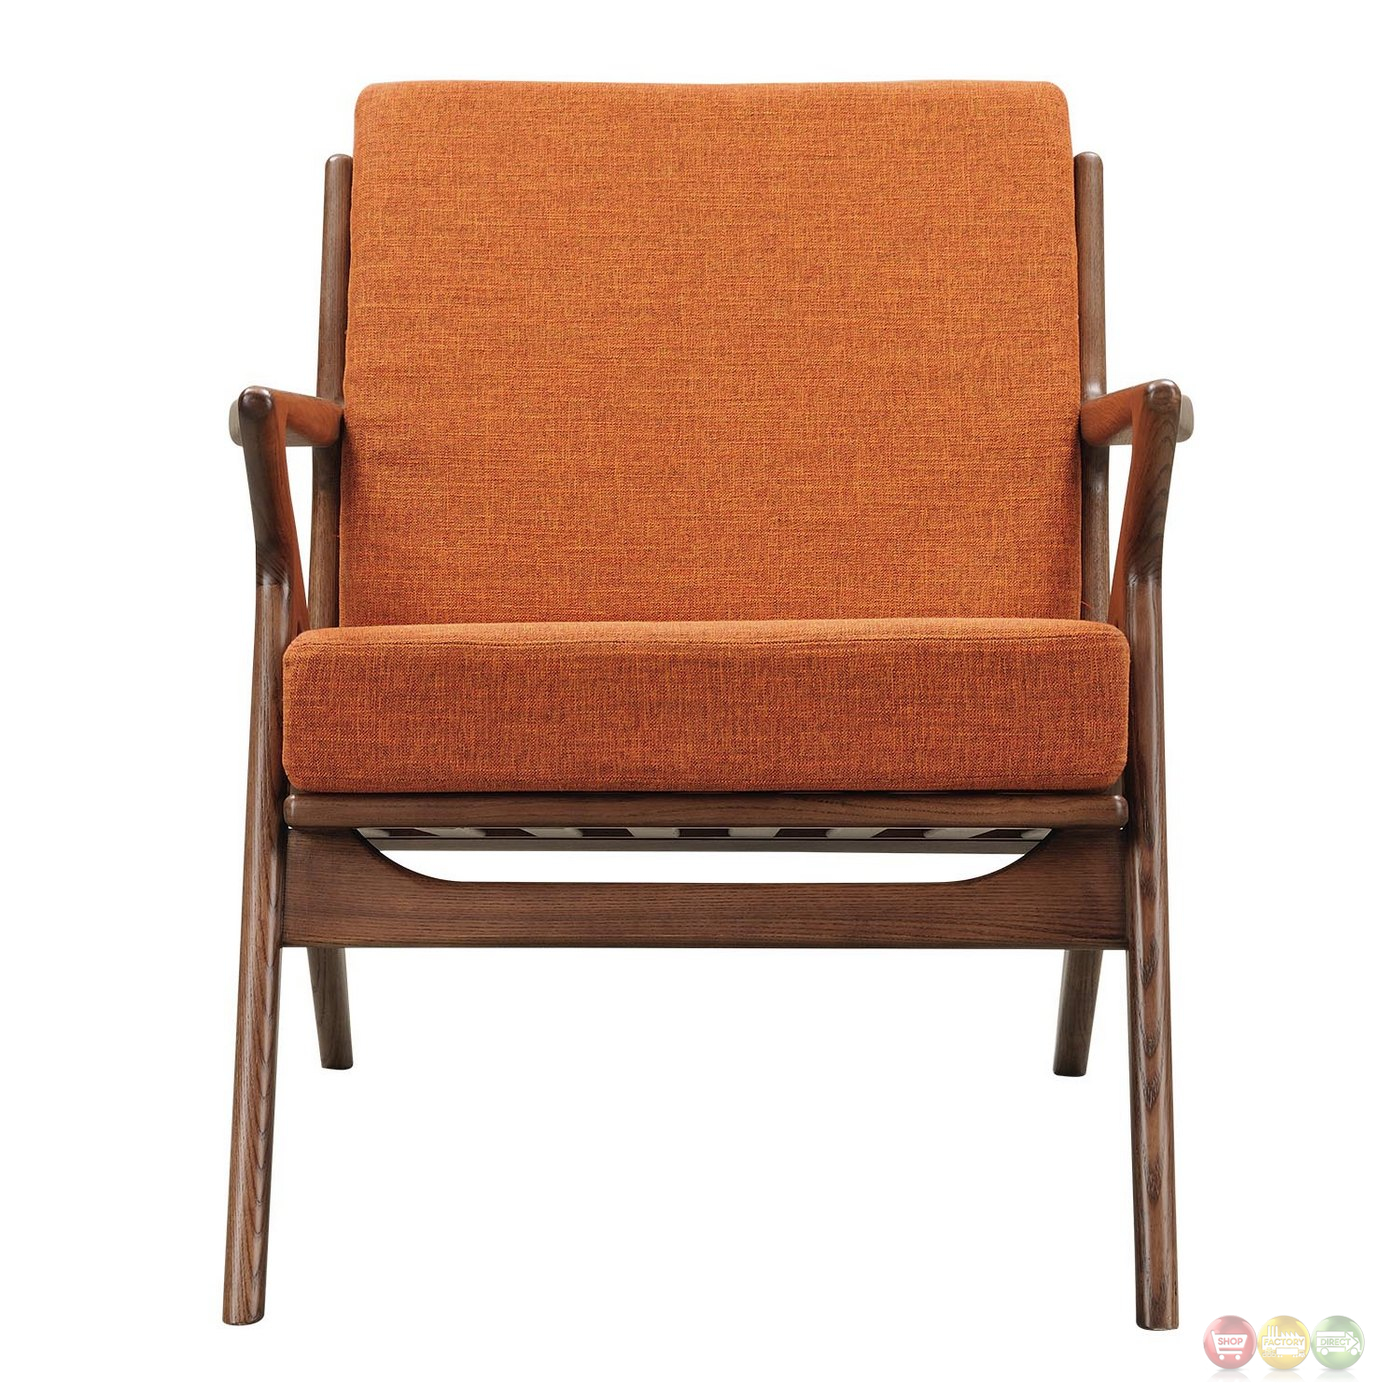 Orange Mid Century Modern Chair Zain Mid Century Modern Orange Fabric Chair With Wooden